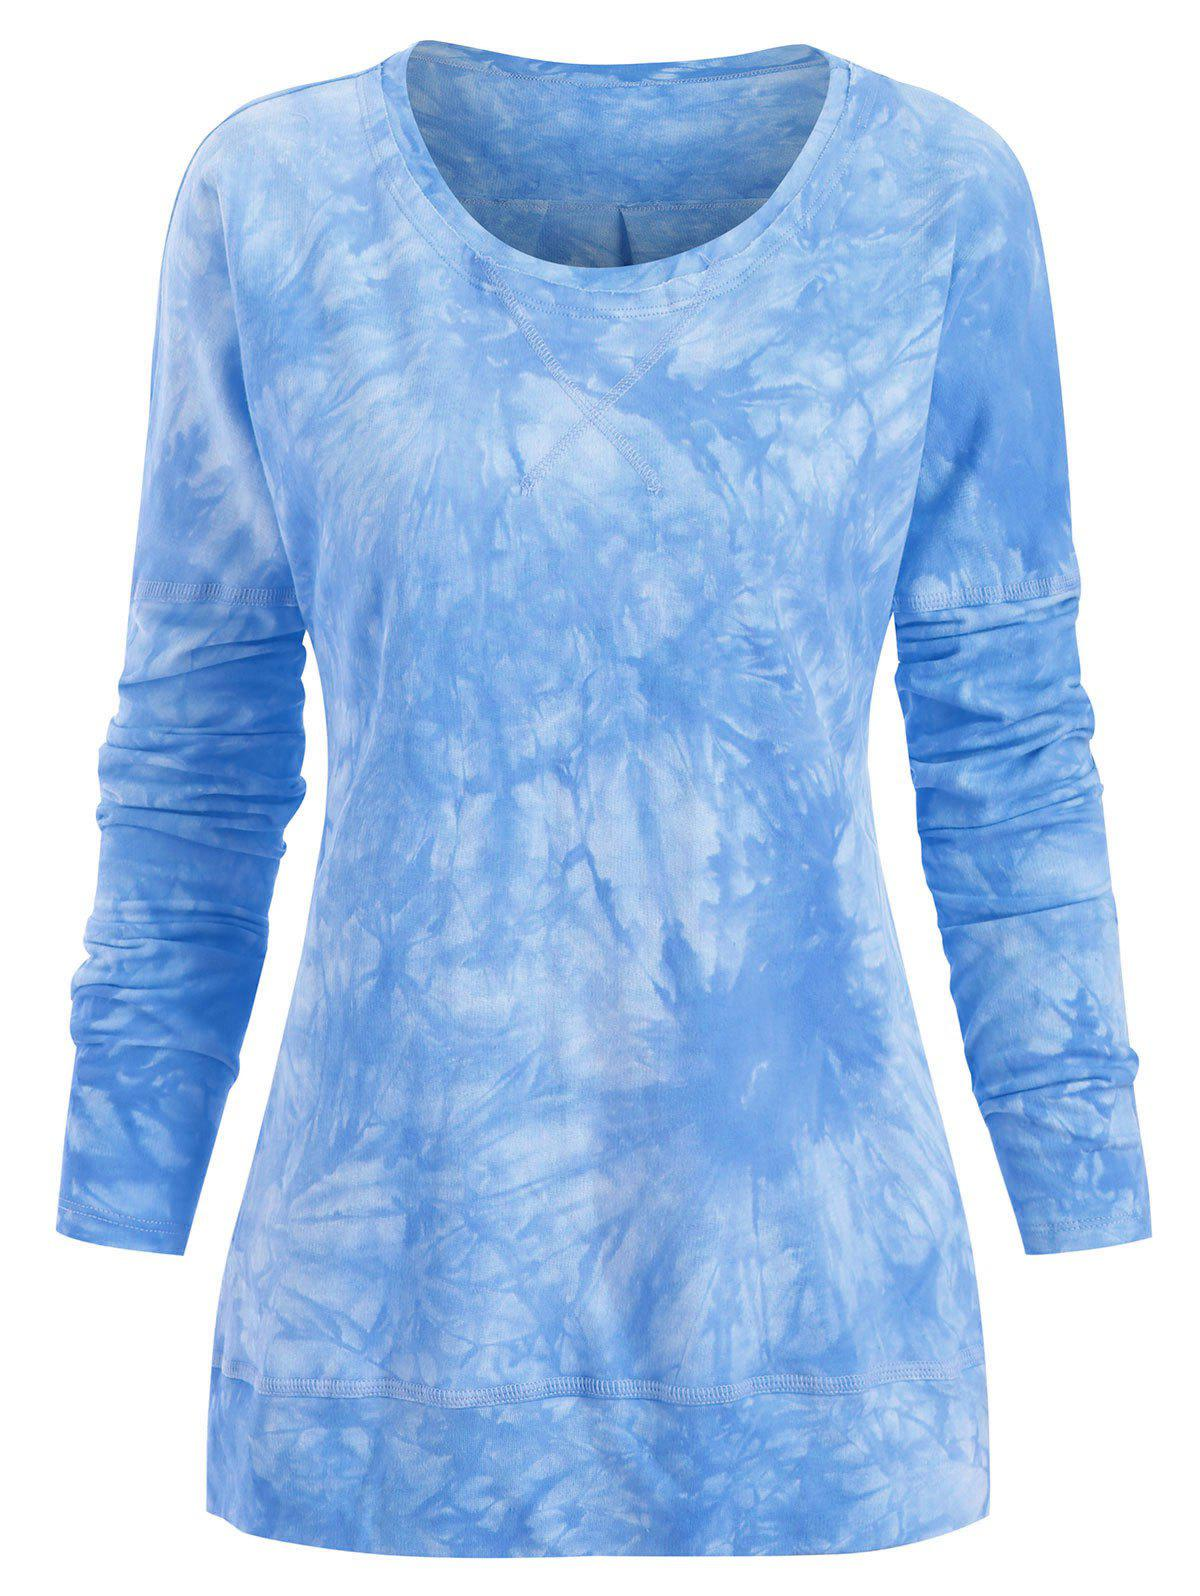 Hot Plus Size Side Slit Tie Dye Topstitching Tee